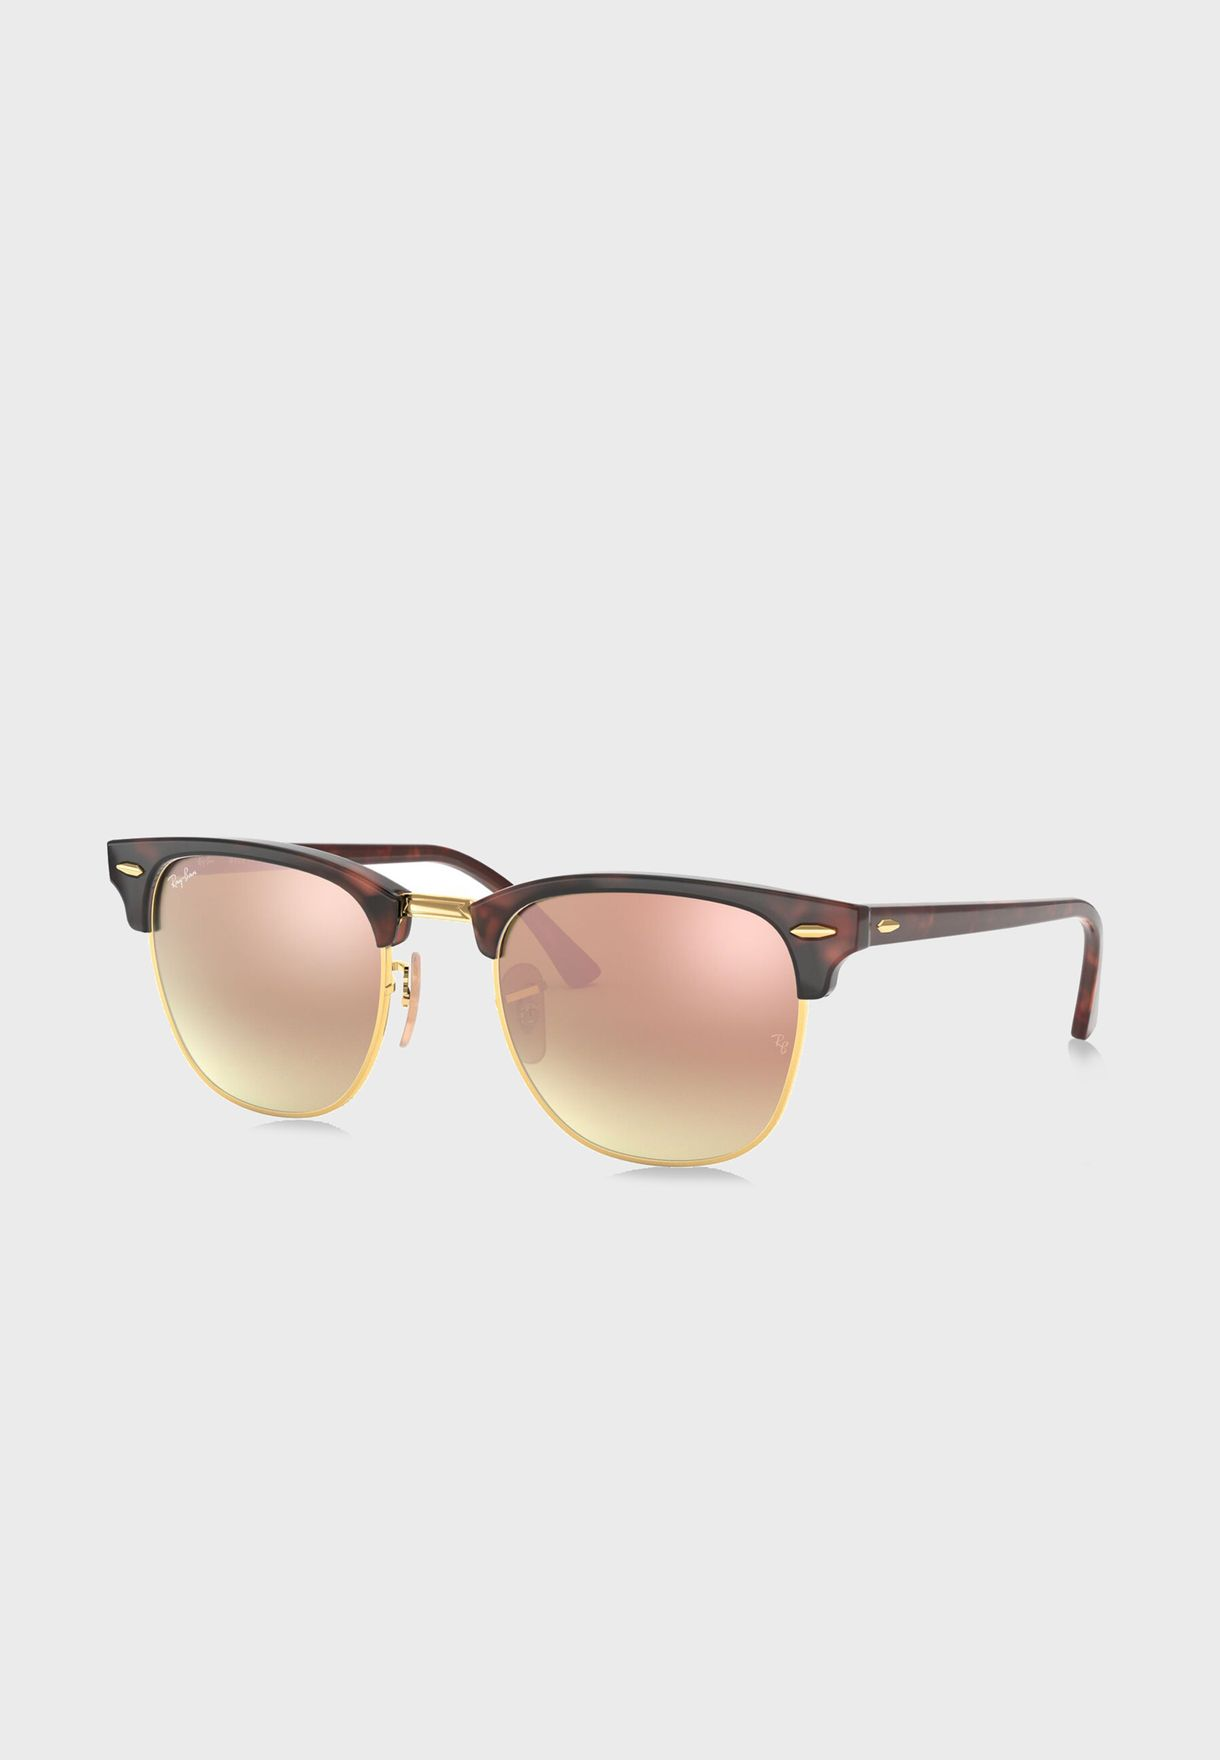 RB3016 Clubmaster Flash Lenses Gradient